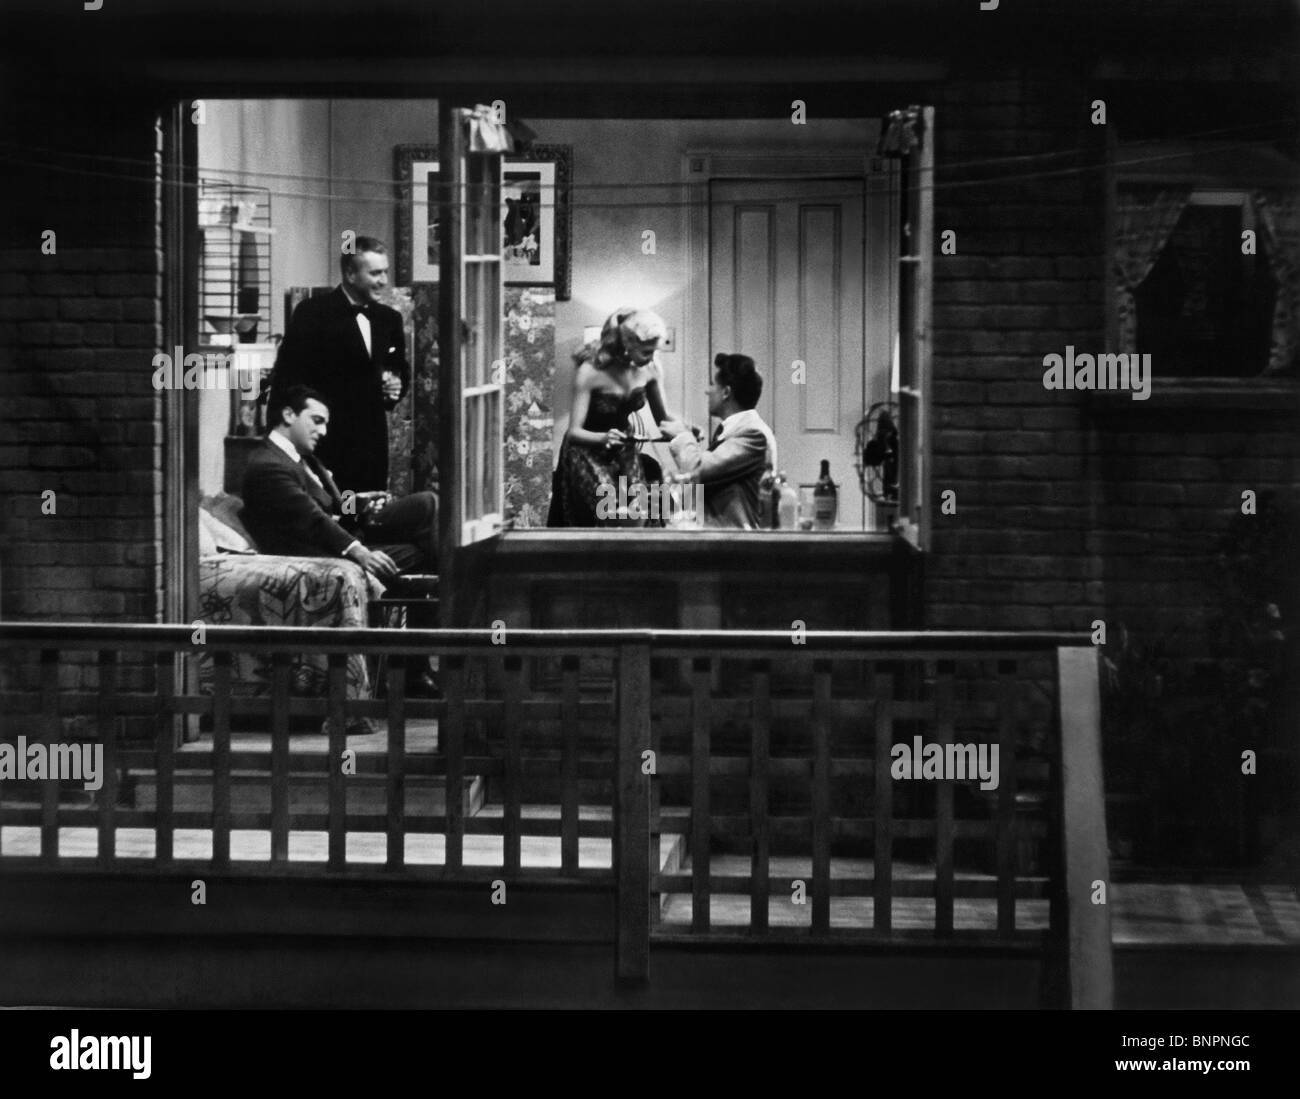 WINDOW SCENE REAR WINDOW; (1954) - Stock Image